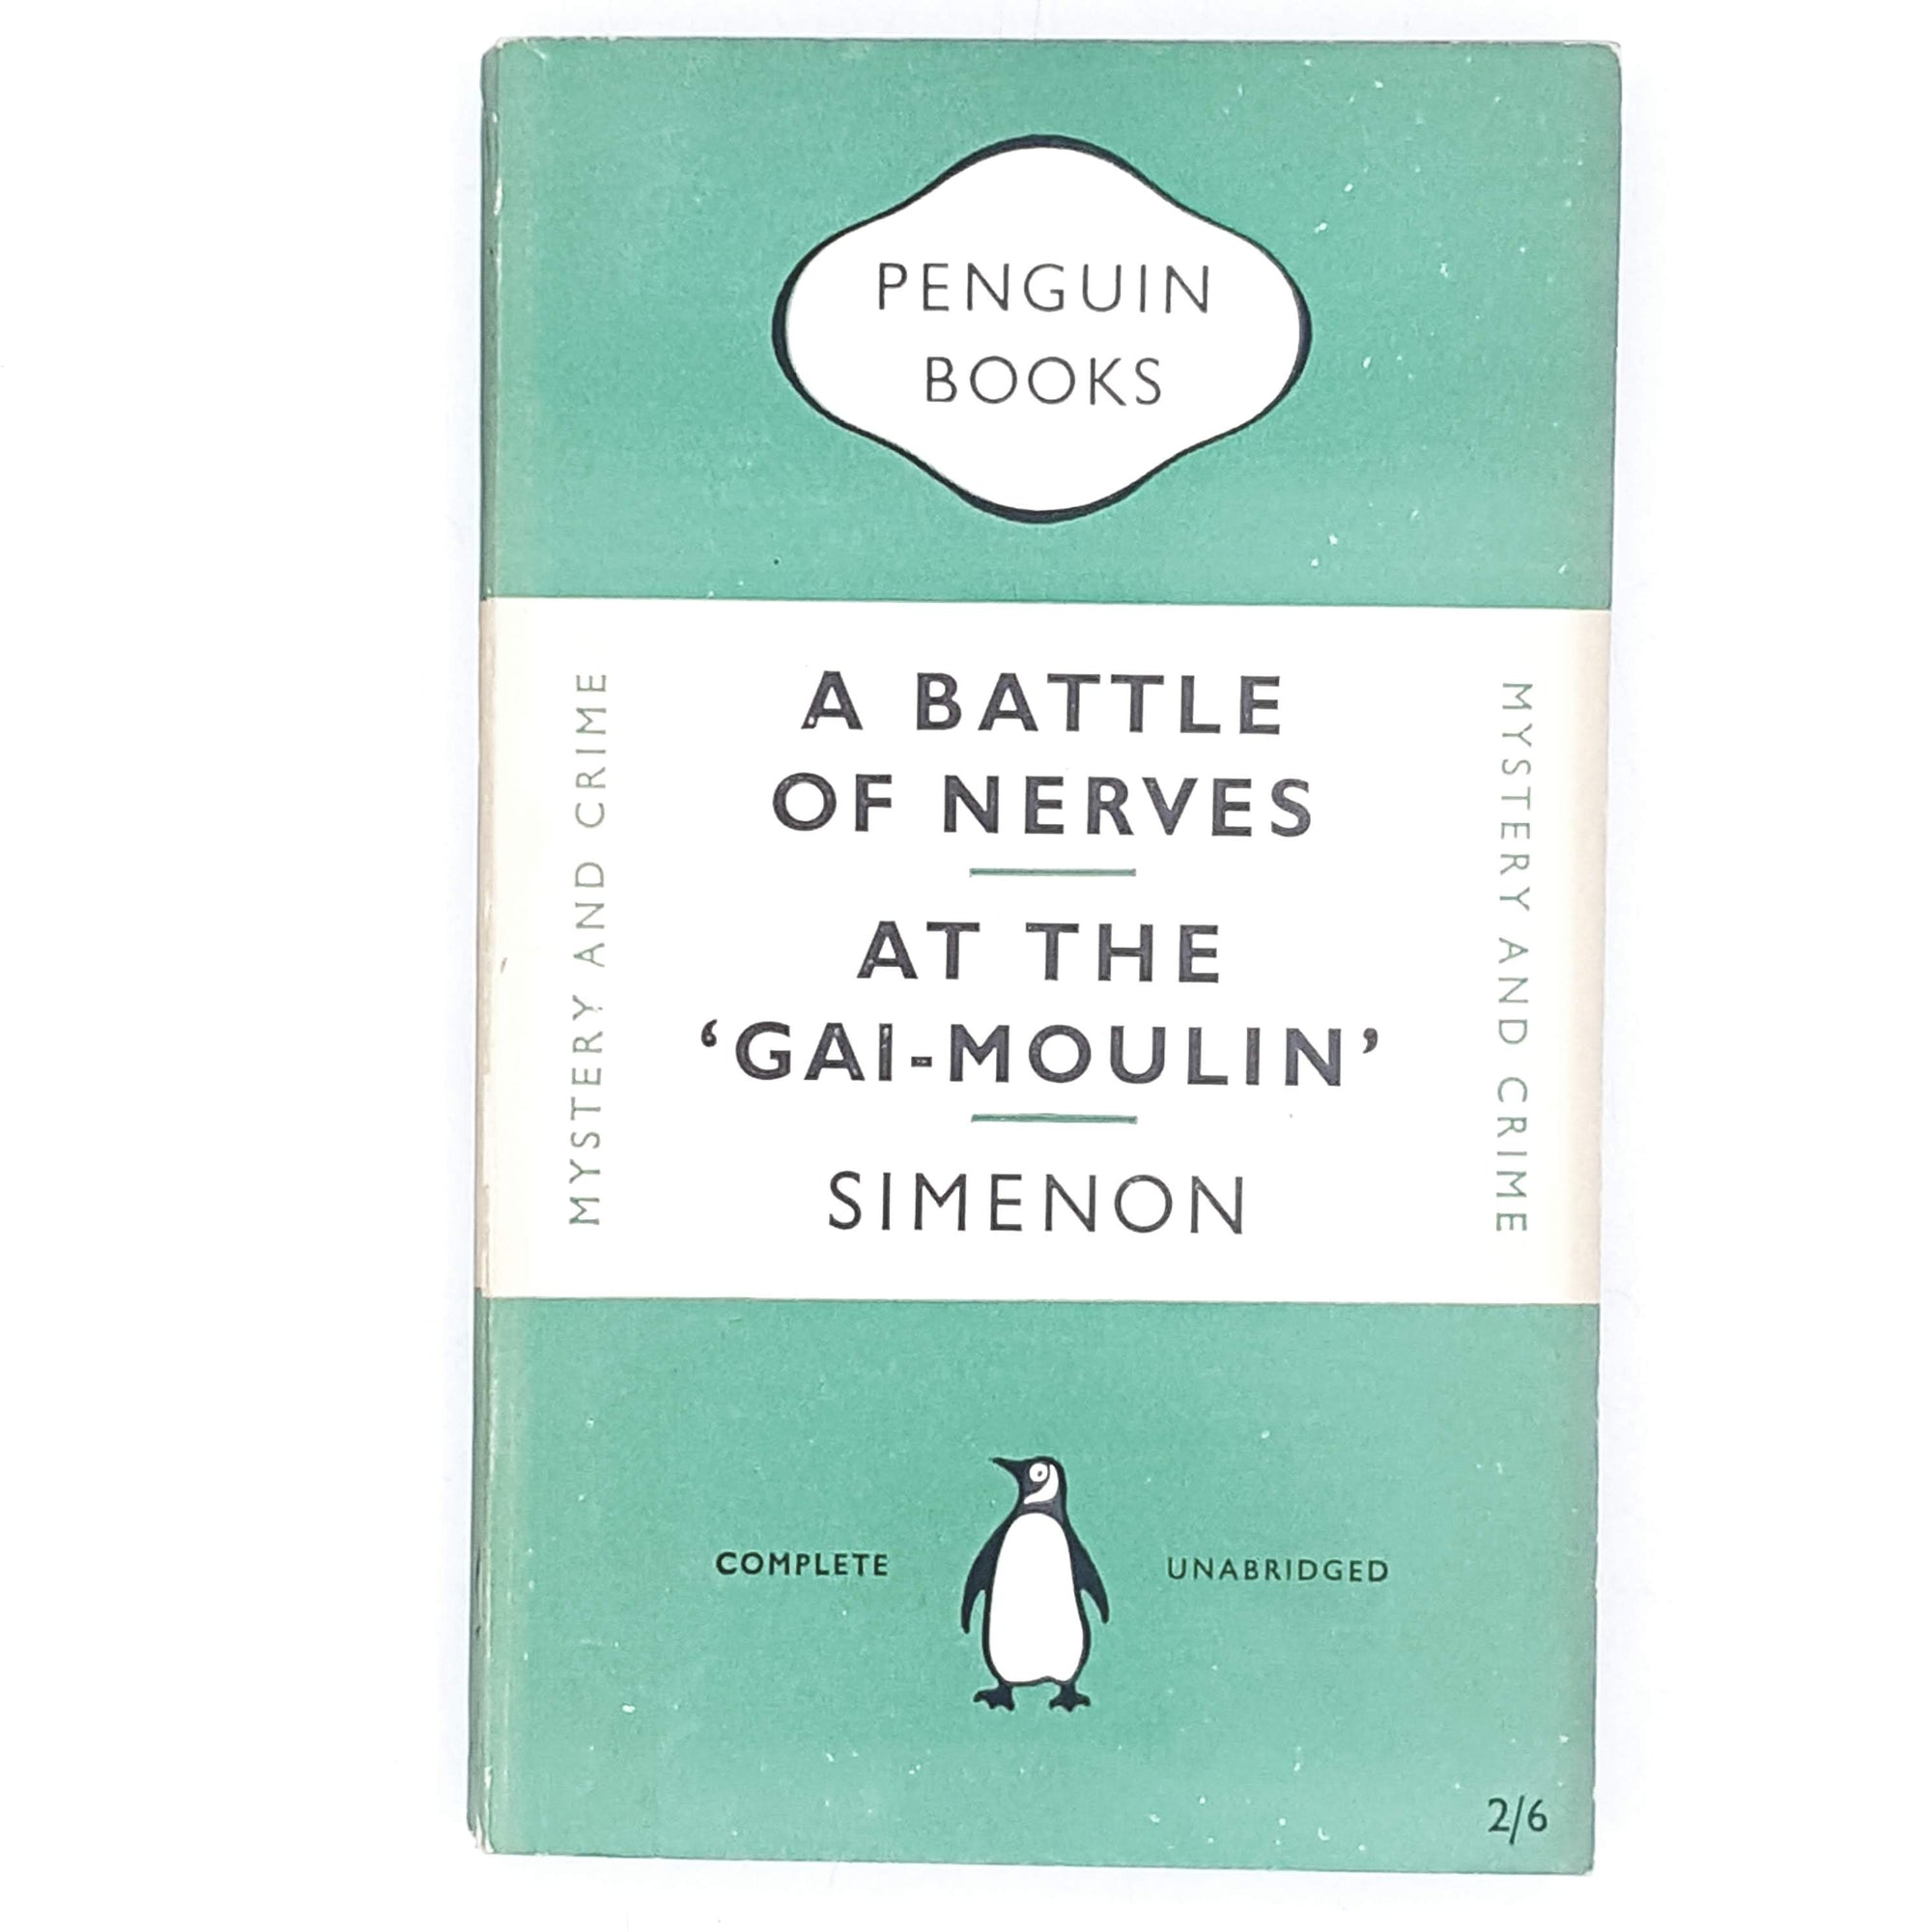 Vintage Penguin Simenon's A Battle of Nerves and At the 'Gai-Moulin' 1951